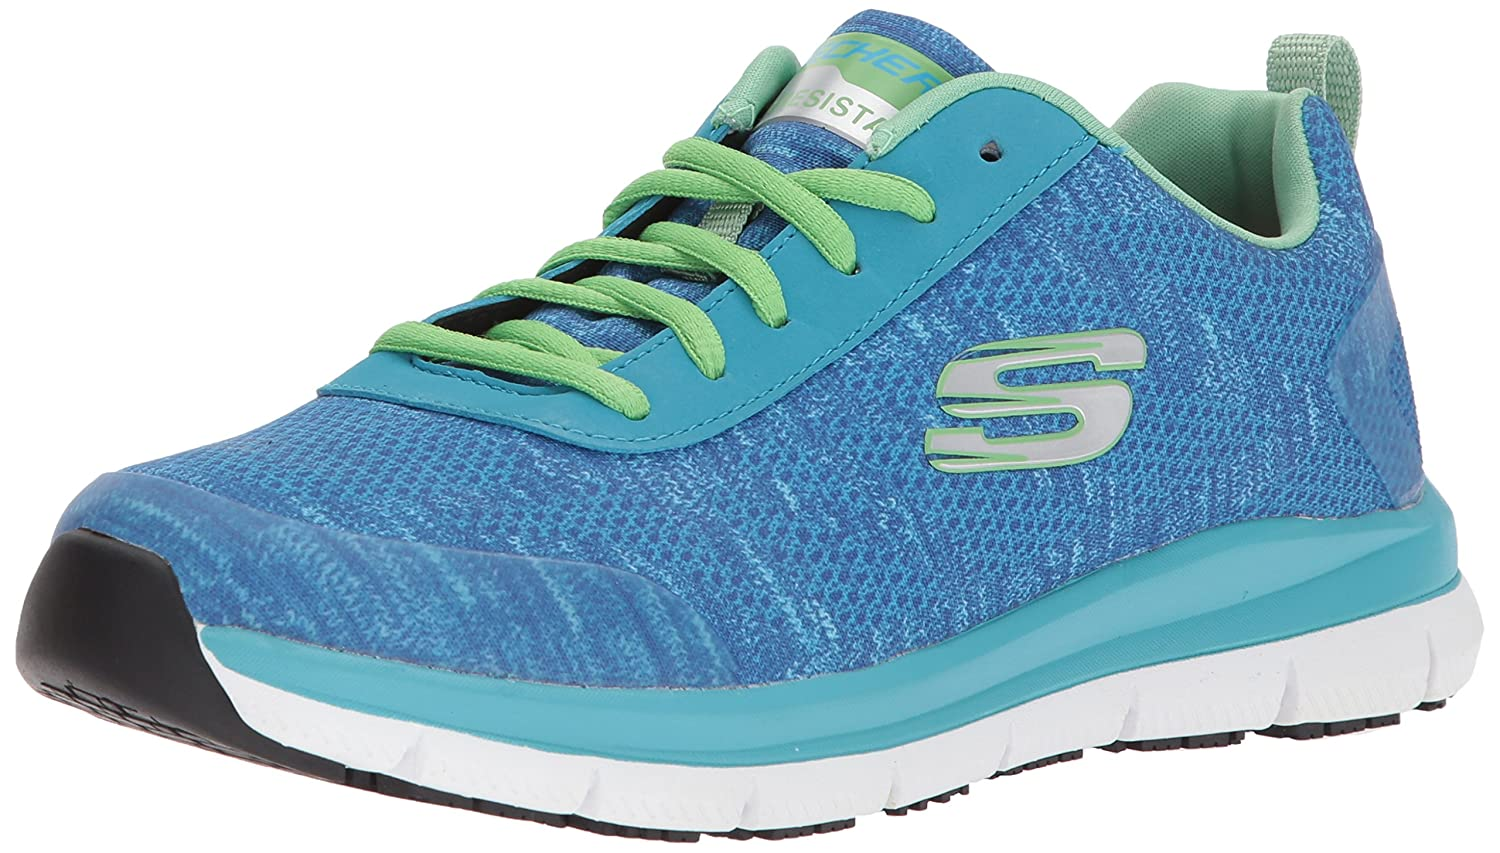 Light bluee Green Skechers for Work Women's Comfort Flex HC Pro SR Health Care and Food Service shoes